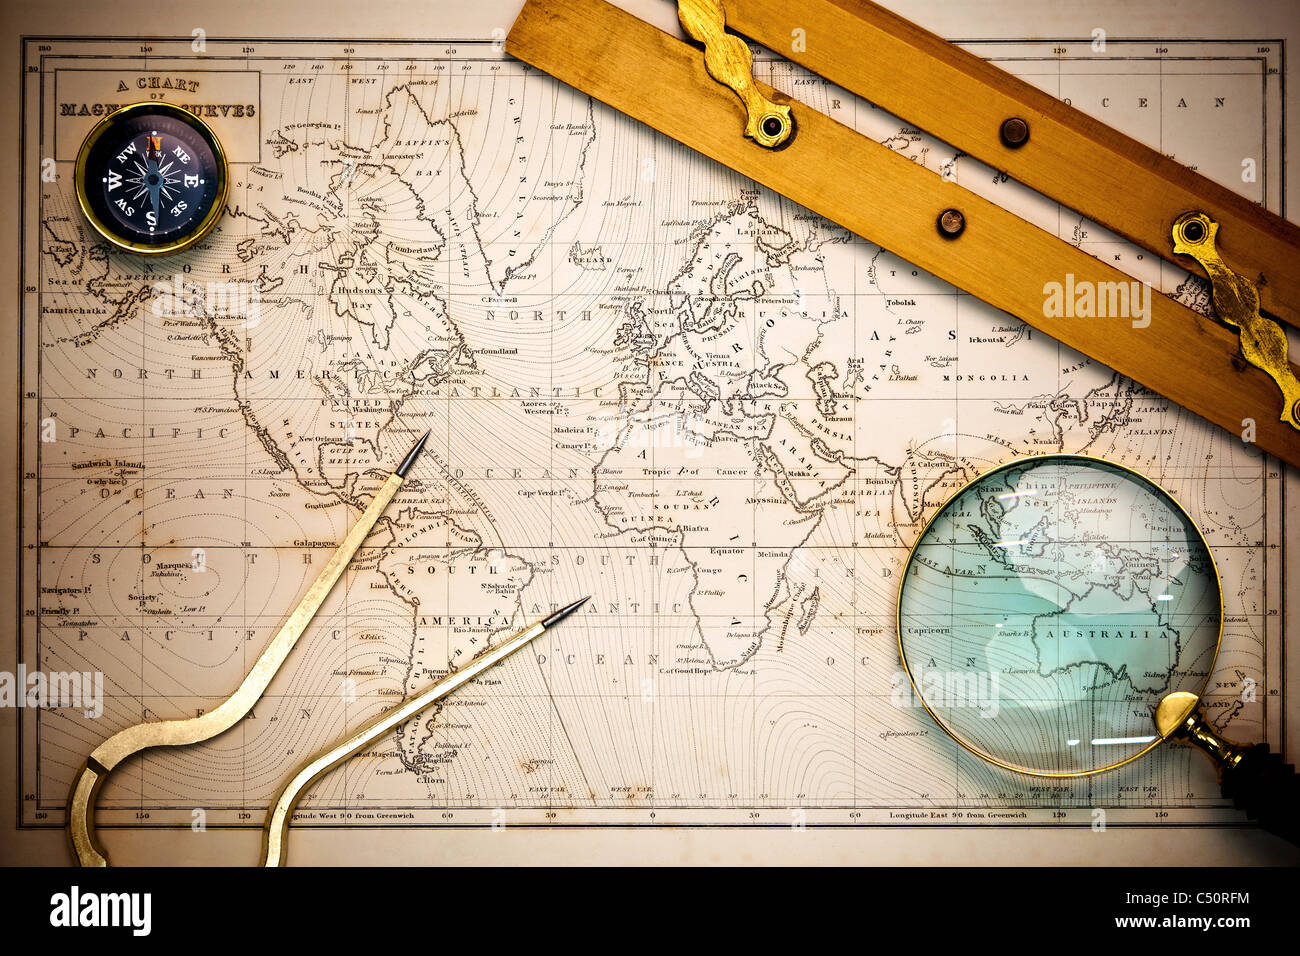 Photo of an old hand drawn 19th century map with navigational objects upon it, with vignetting. Stock Photo